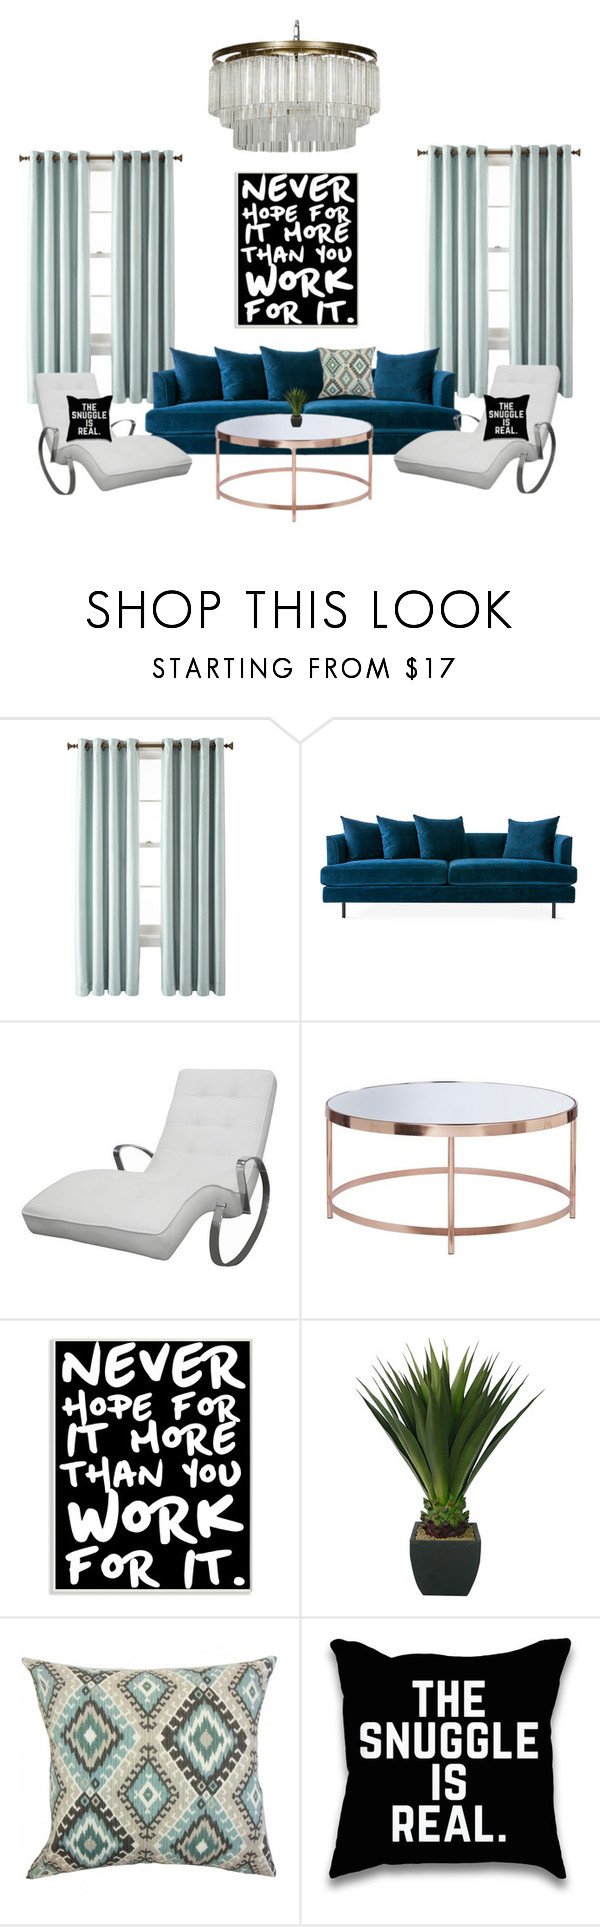 Life On The Run by karissajung on Polyvore featuring interior, interiors, interior design, home, home decor, interior decorating, nOir, Royal Velvet and Stupell